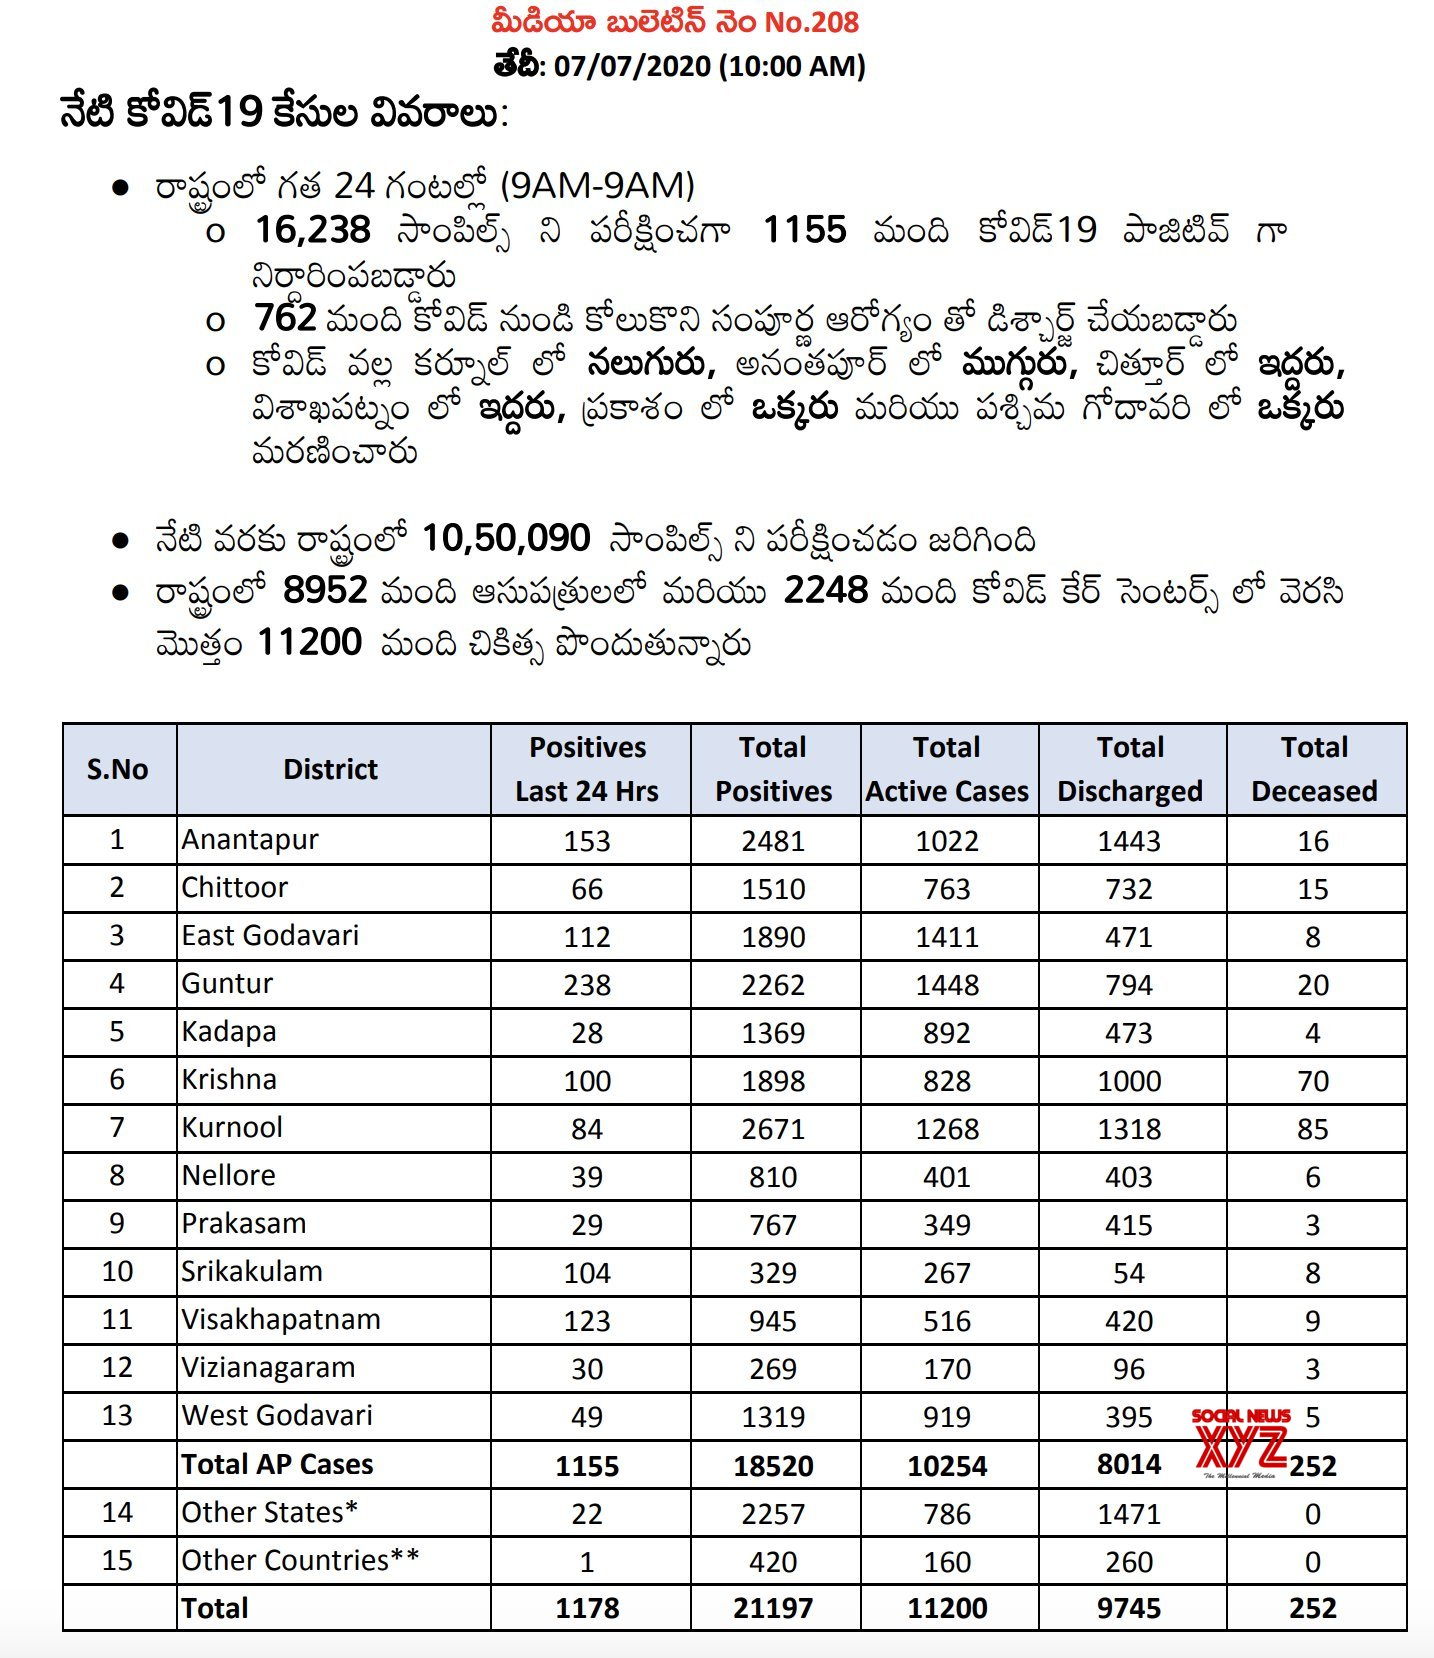 Andhra Pradesh Has 1,178 Positive Cases And The Total Positive Cases In The State Increased To 21,197